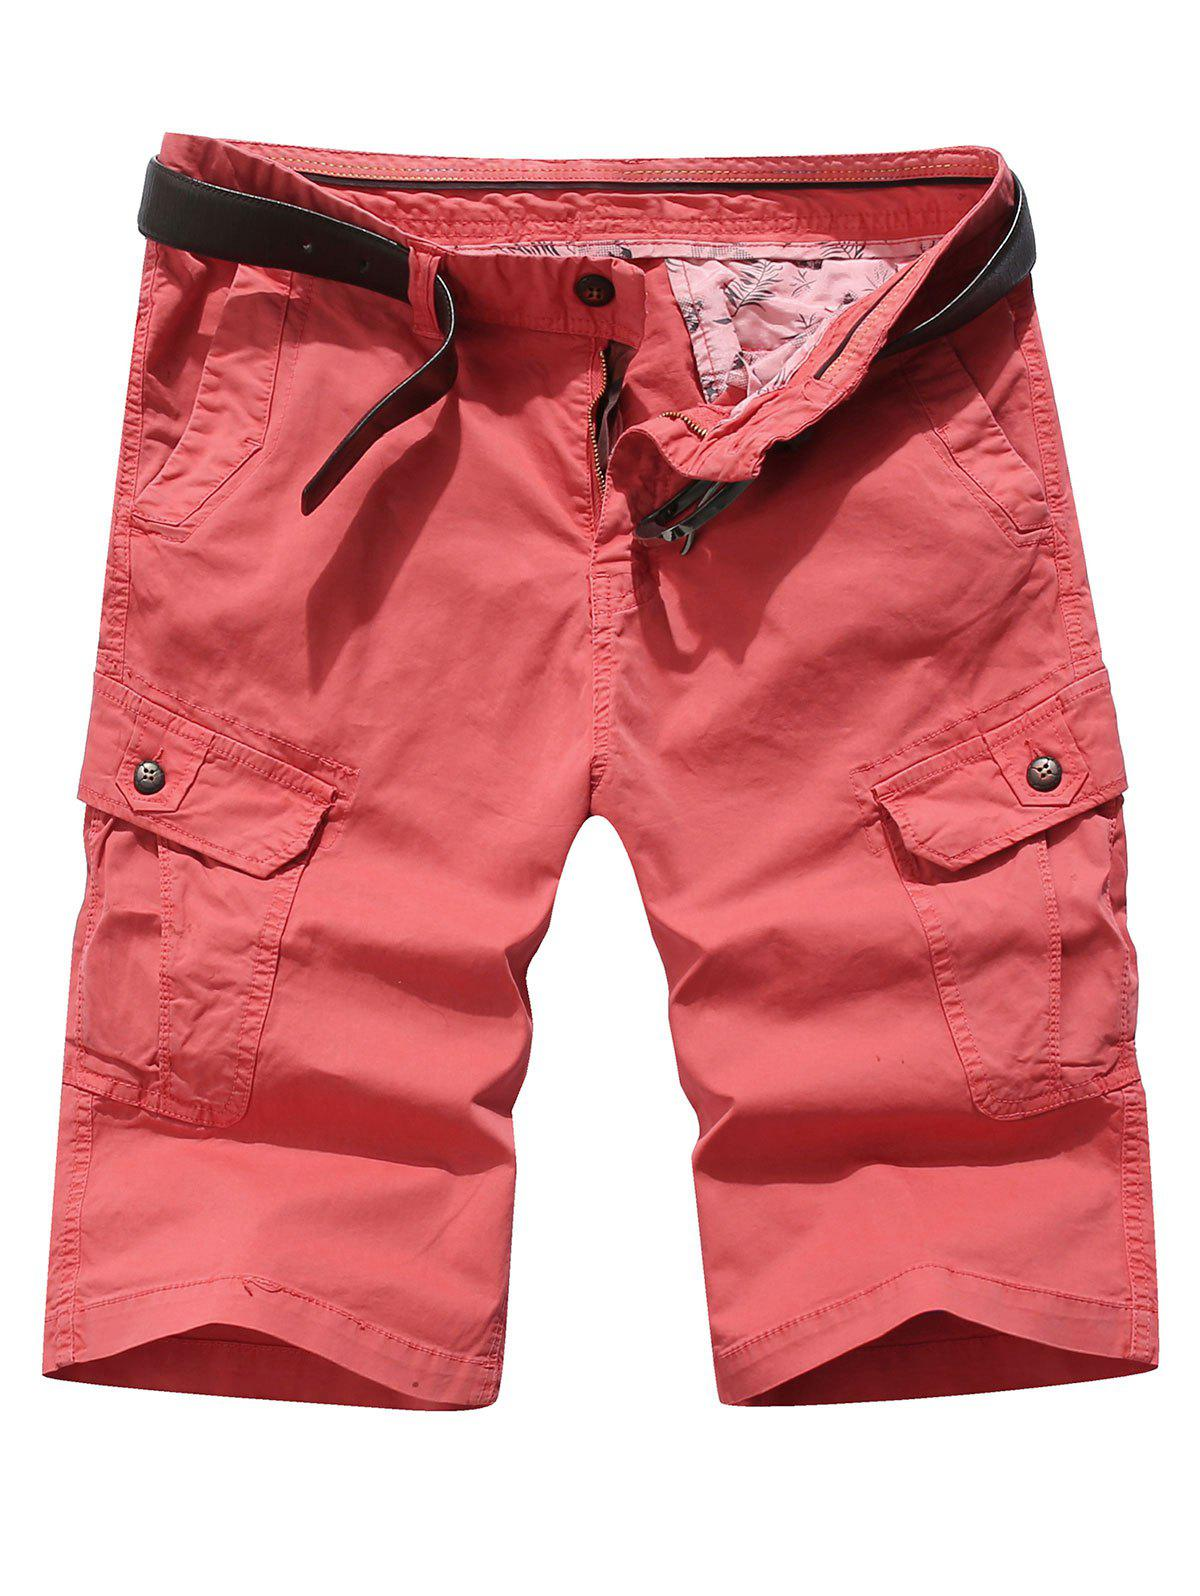 Solid Color Pocket Cargo Shorts - BEAN RED 32